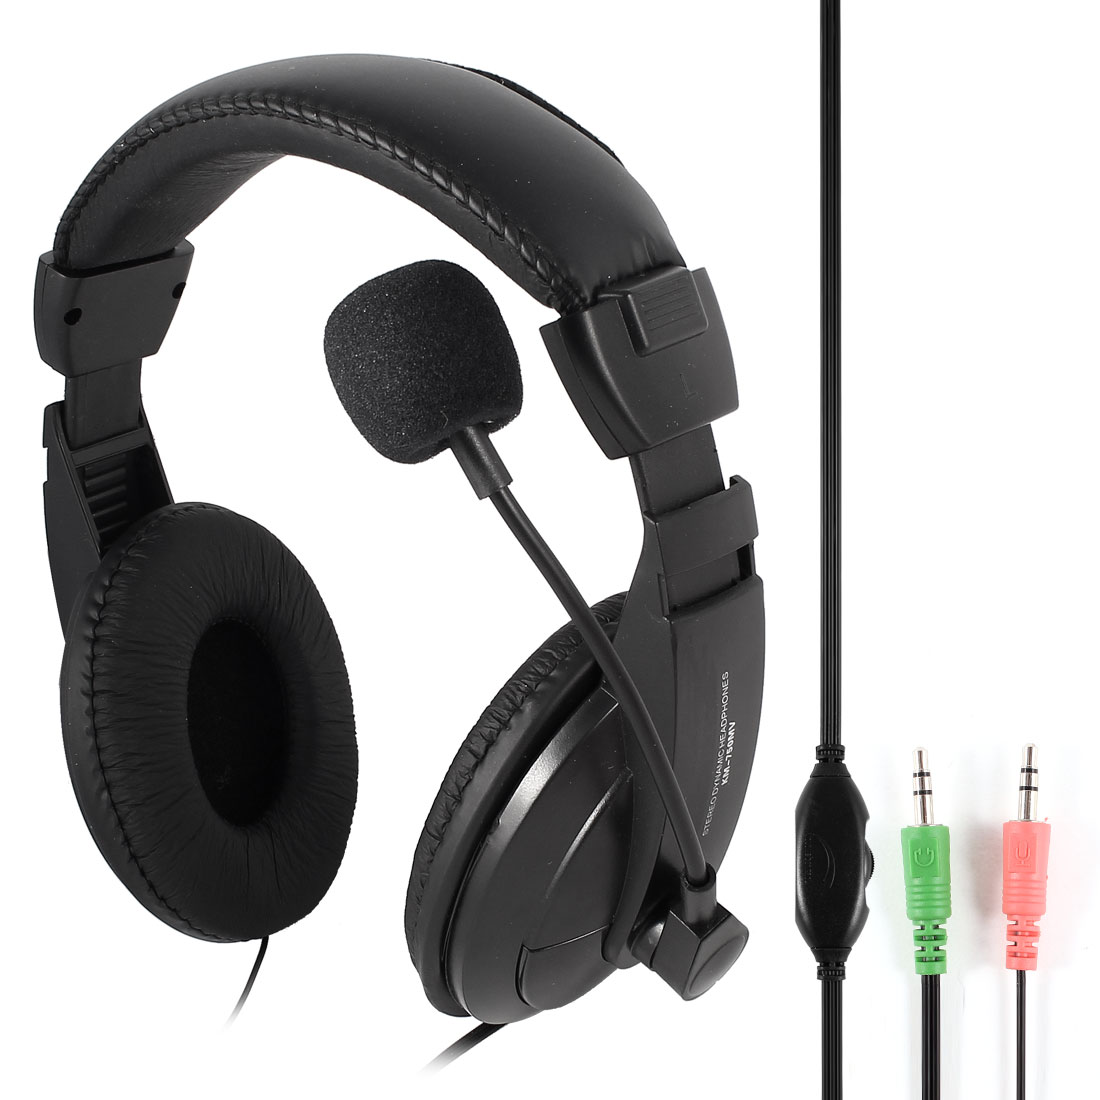 Black Adjustable Headband 3.5mm Stereo Dynamic Headphone w Mic for PC Gaming